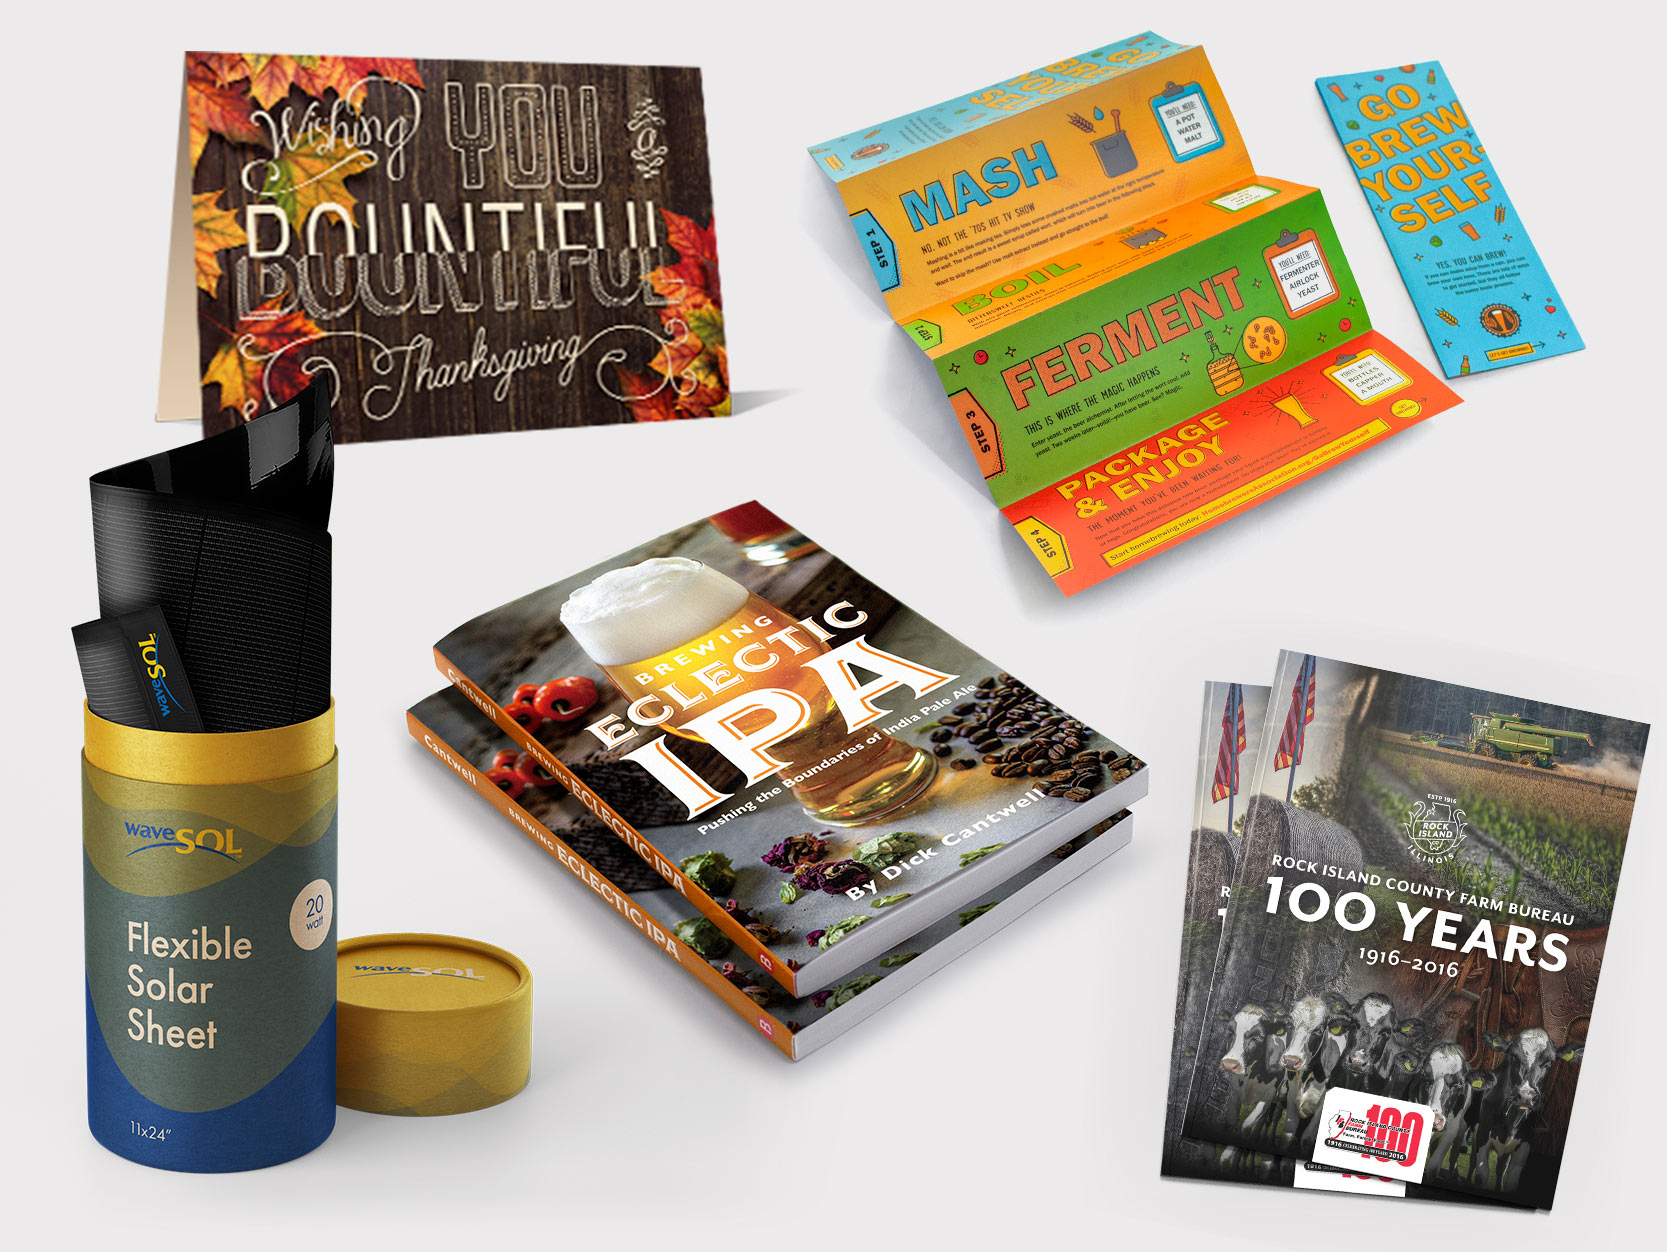 A collage of print examples including Thanksgiving card, fold-out brochure for homebrewing, Brewing Eclectic IPA book stack, a 100 Years Rock Island County Farm Bureau book and packaging mockup for Wavesol flexible solar panel.